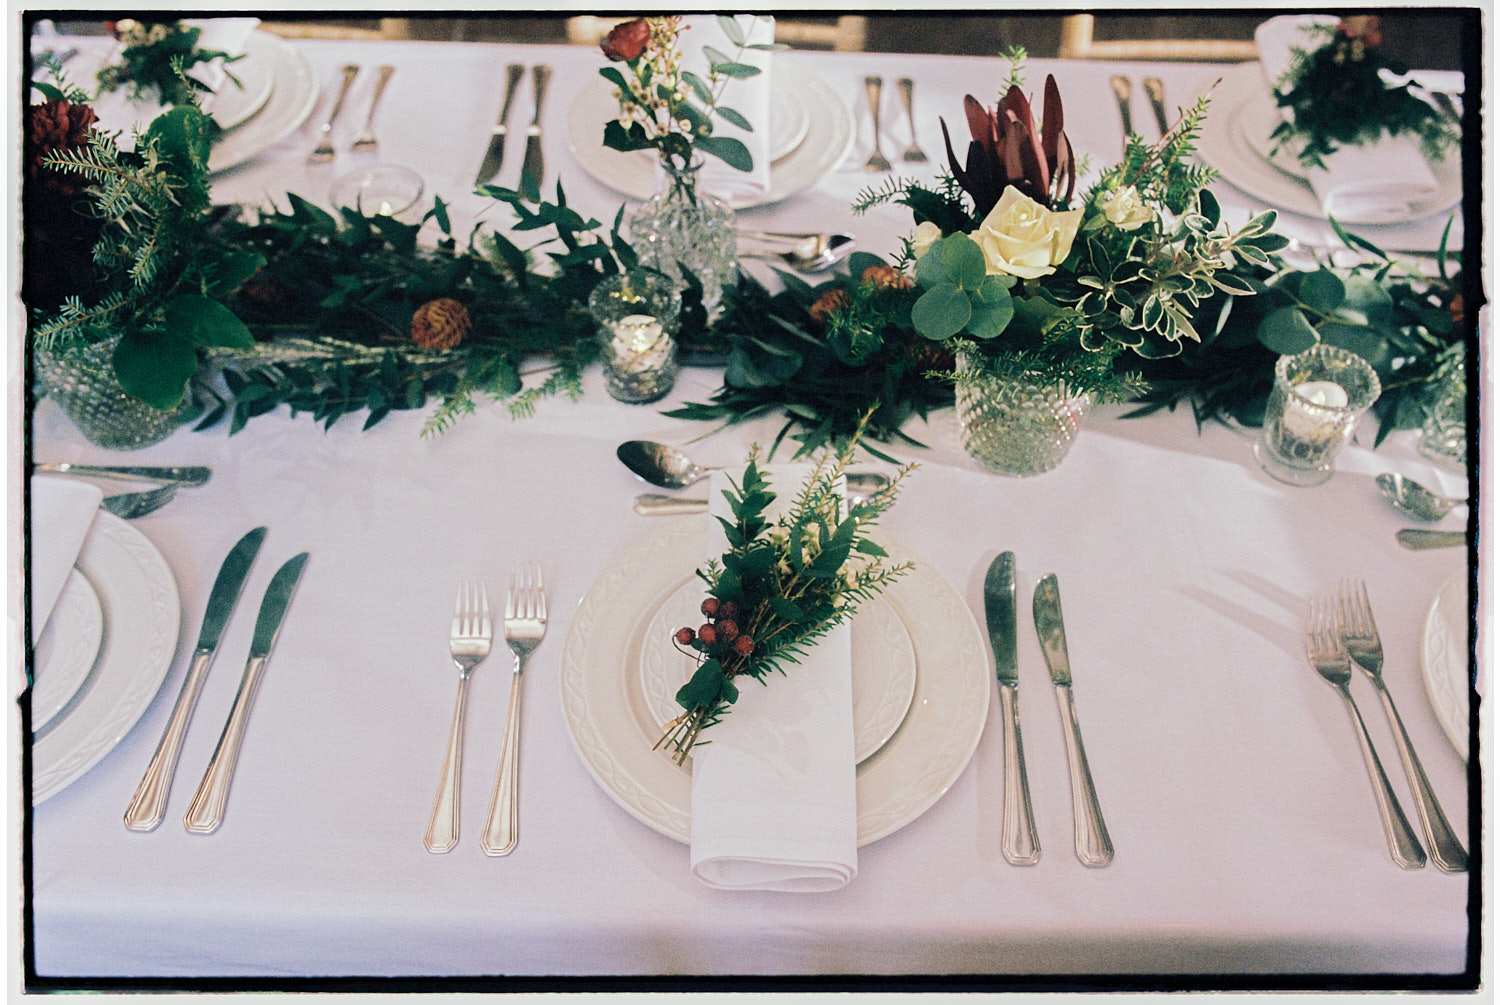 A table setting for a wedding on white linen